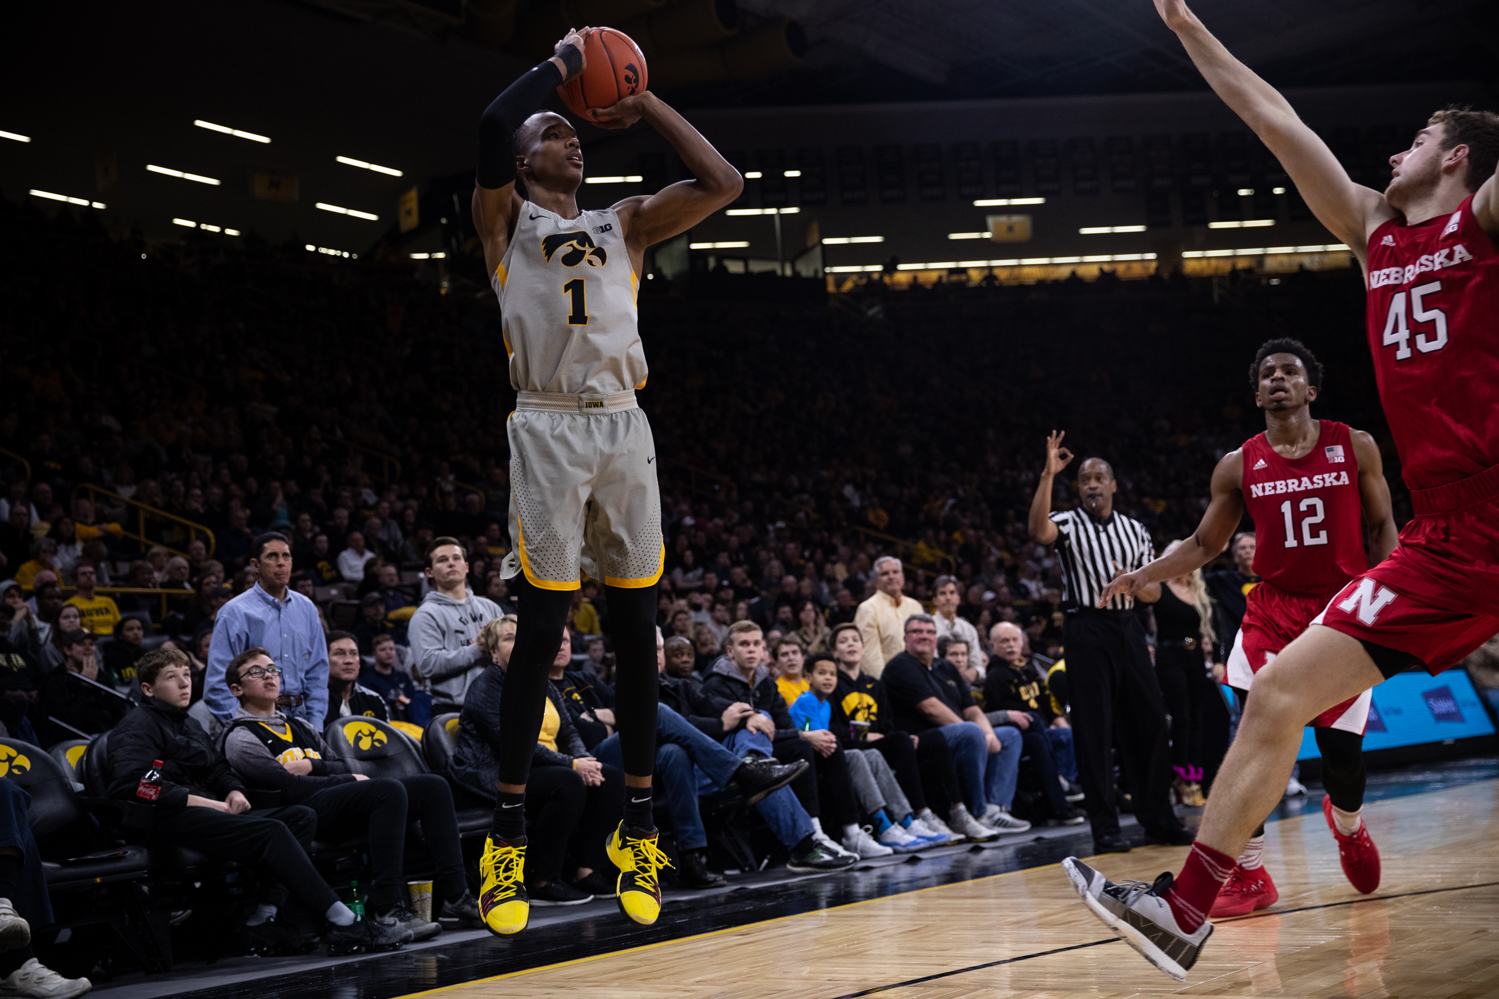 Iowa guard Maishe Dailey shoots a three during Iowa's game against Nebraska at Carver-Hawkeye Arena on Sunday, January 6, 2019. The Hawkeyes defeated the Cornhuskers 93-84.